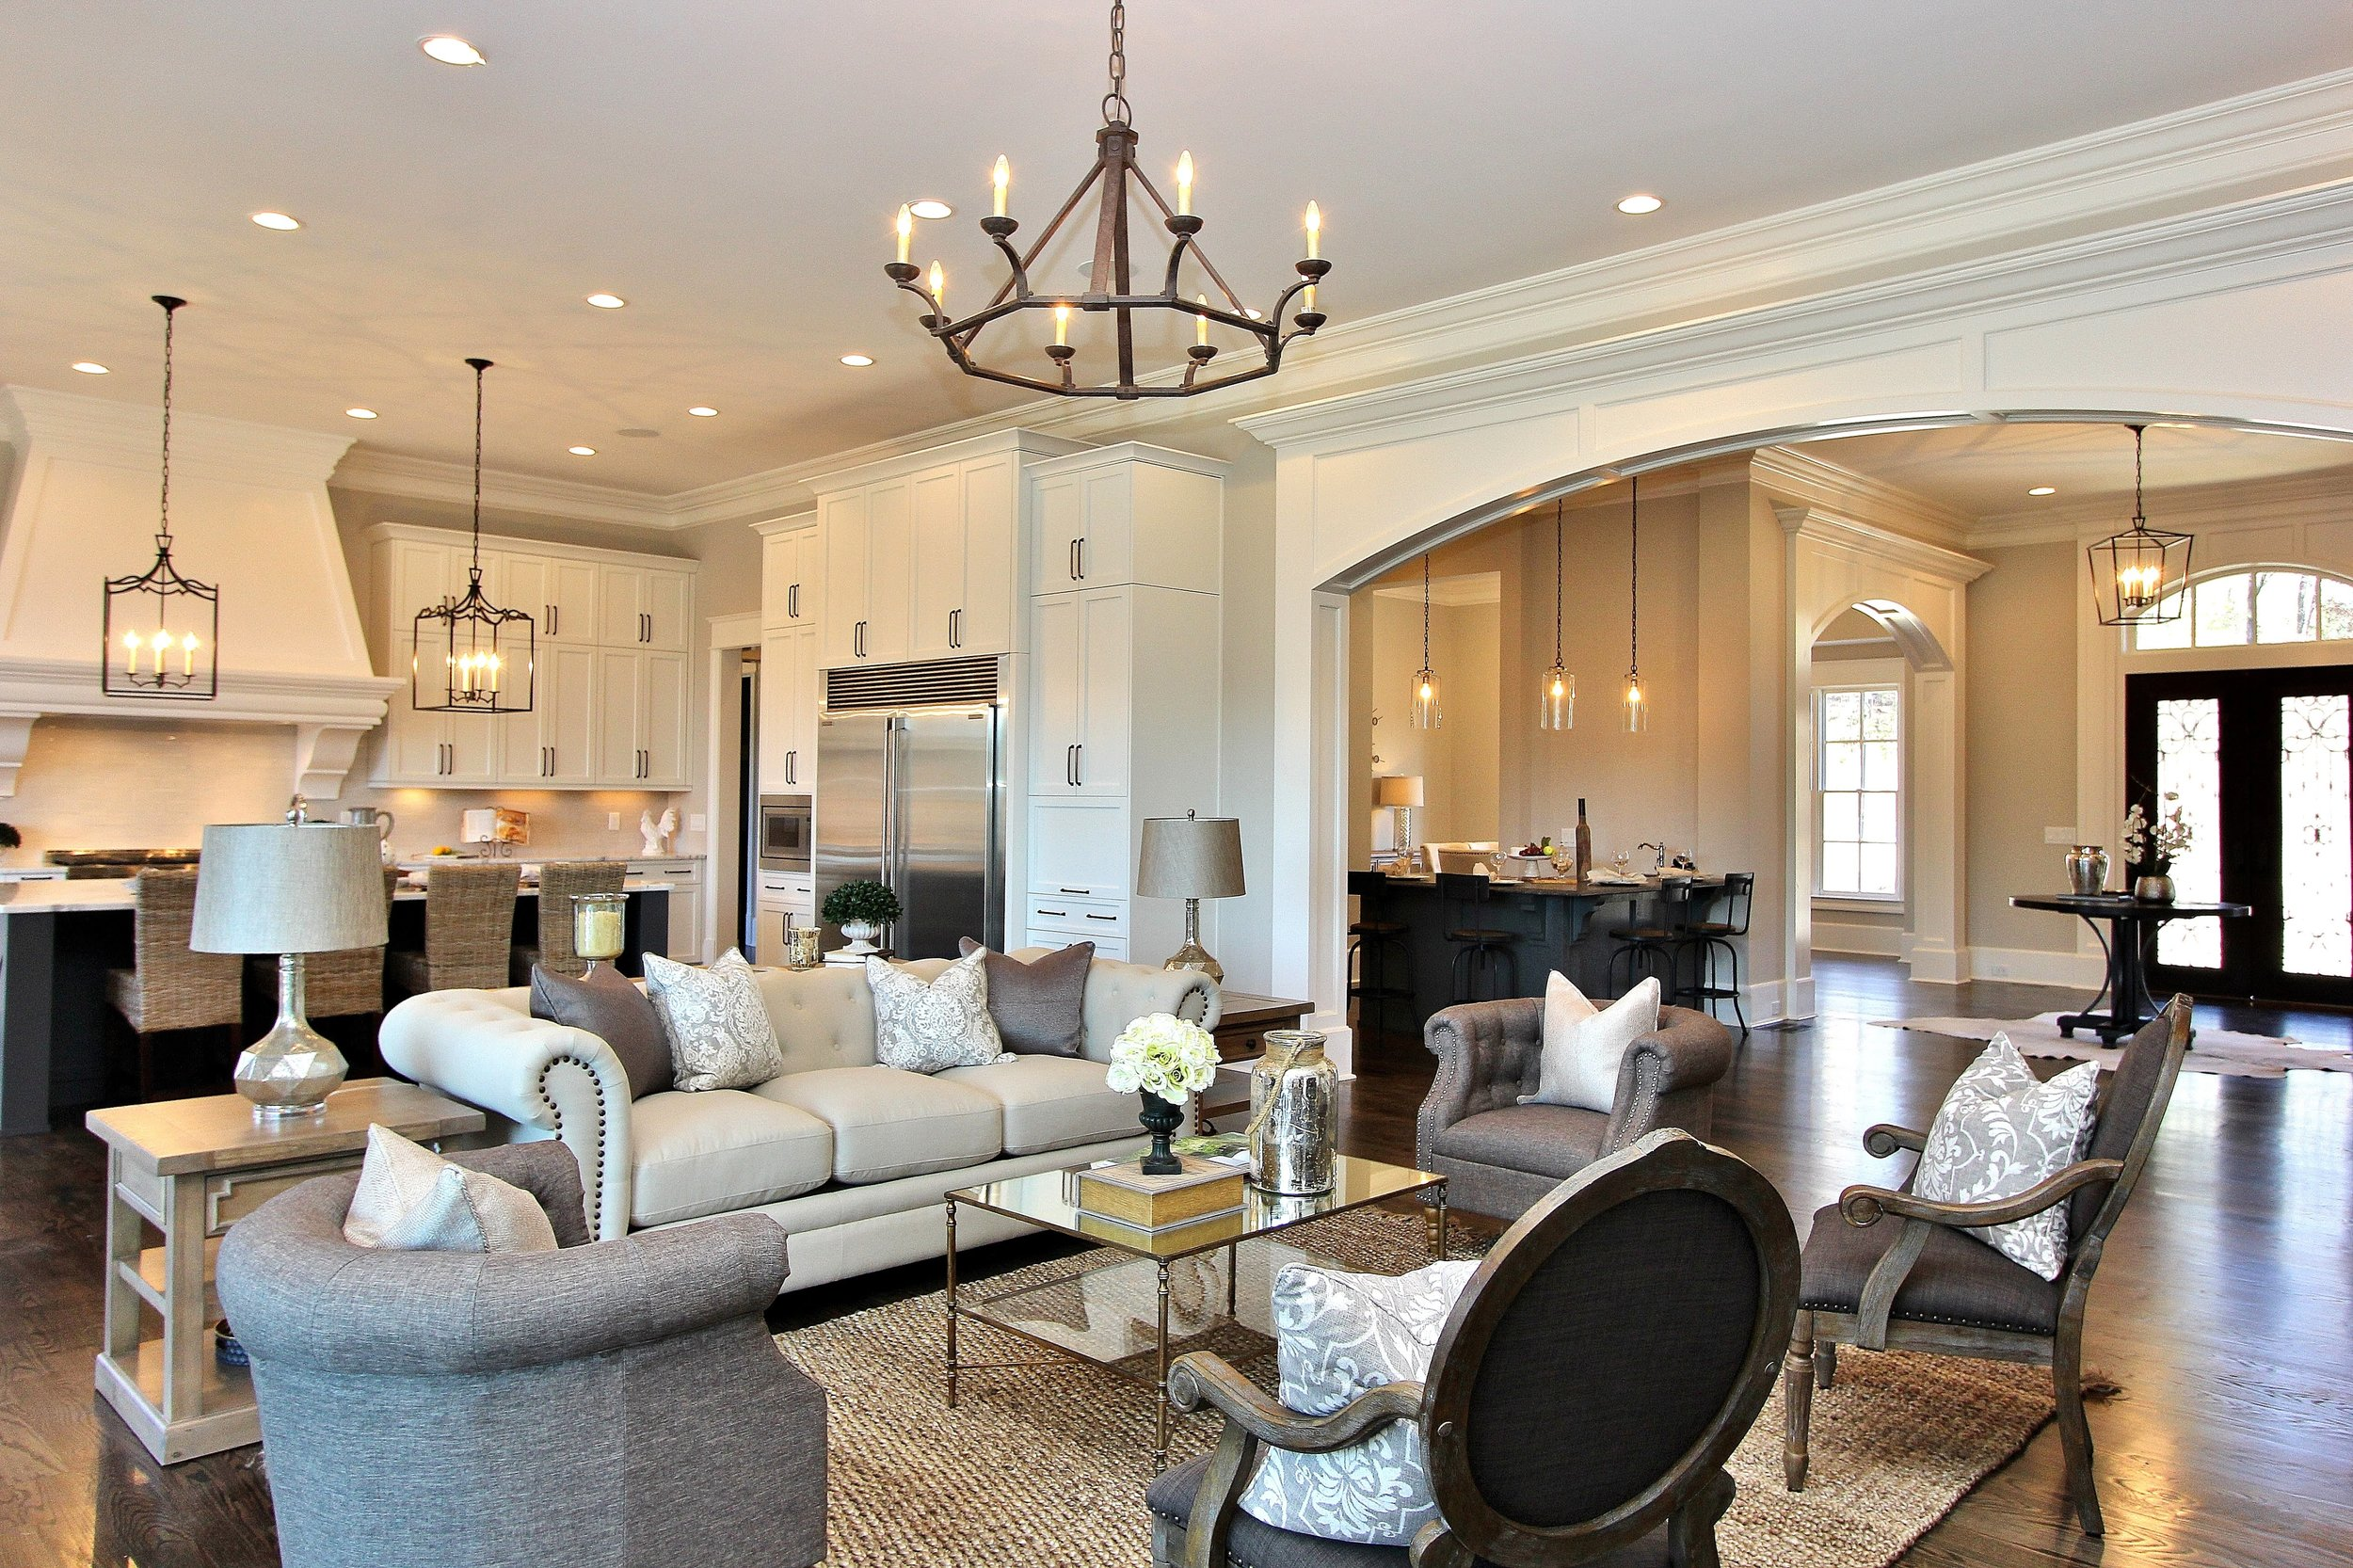 Lot 261_family room and kitchen (1).JPG